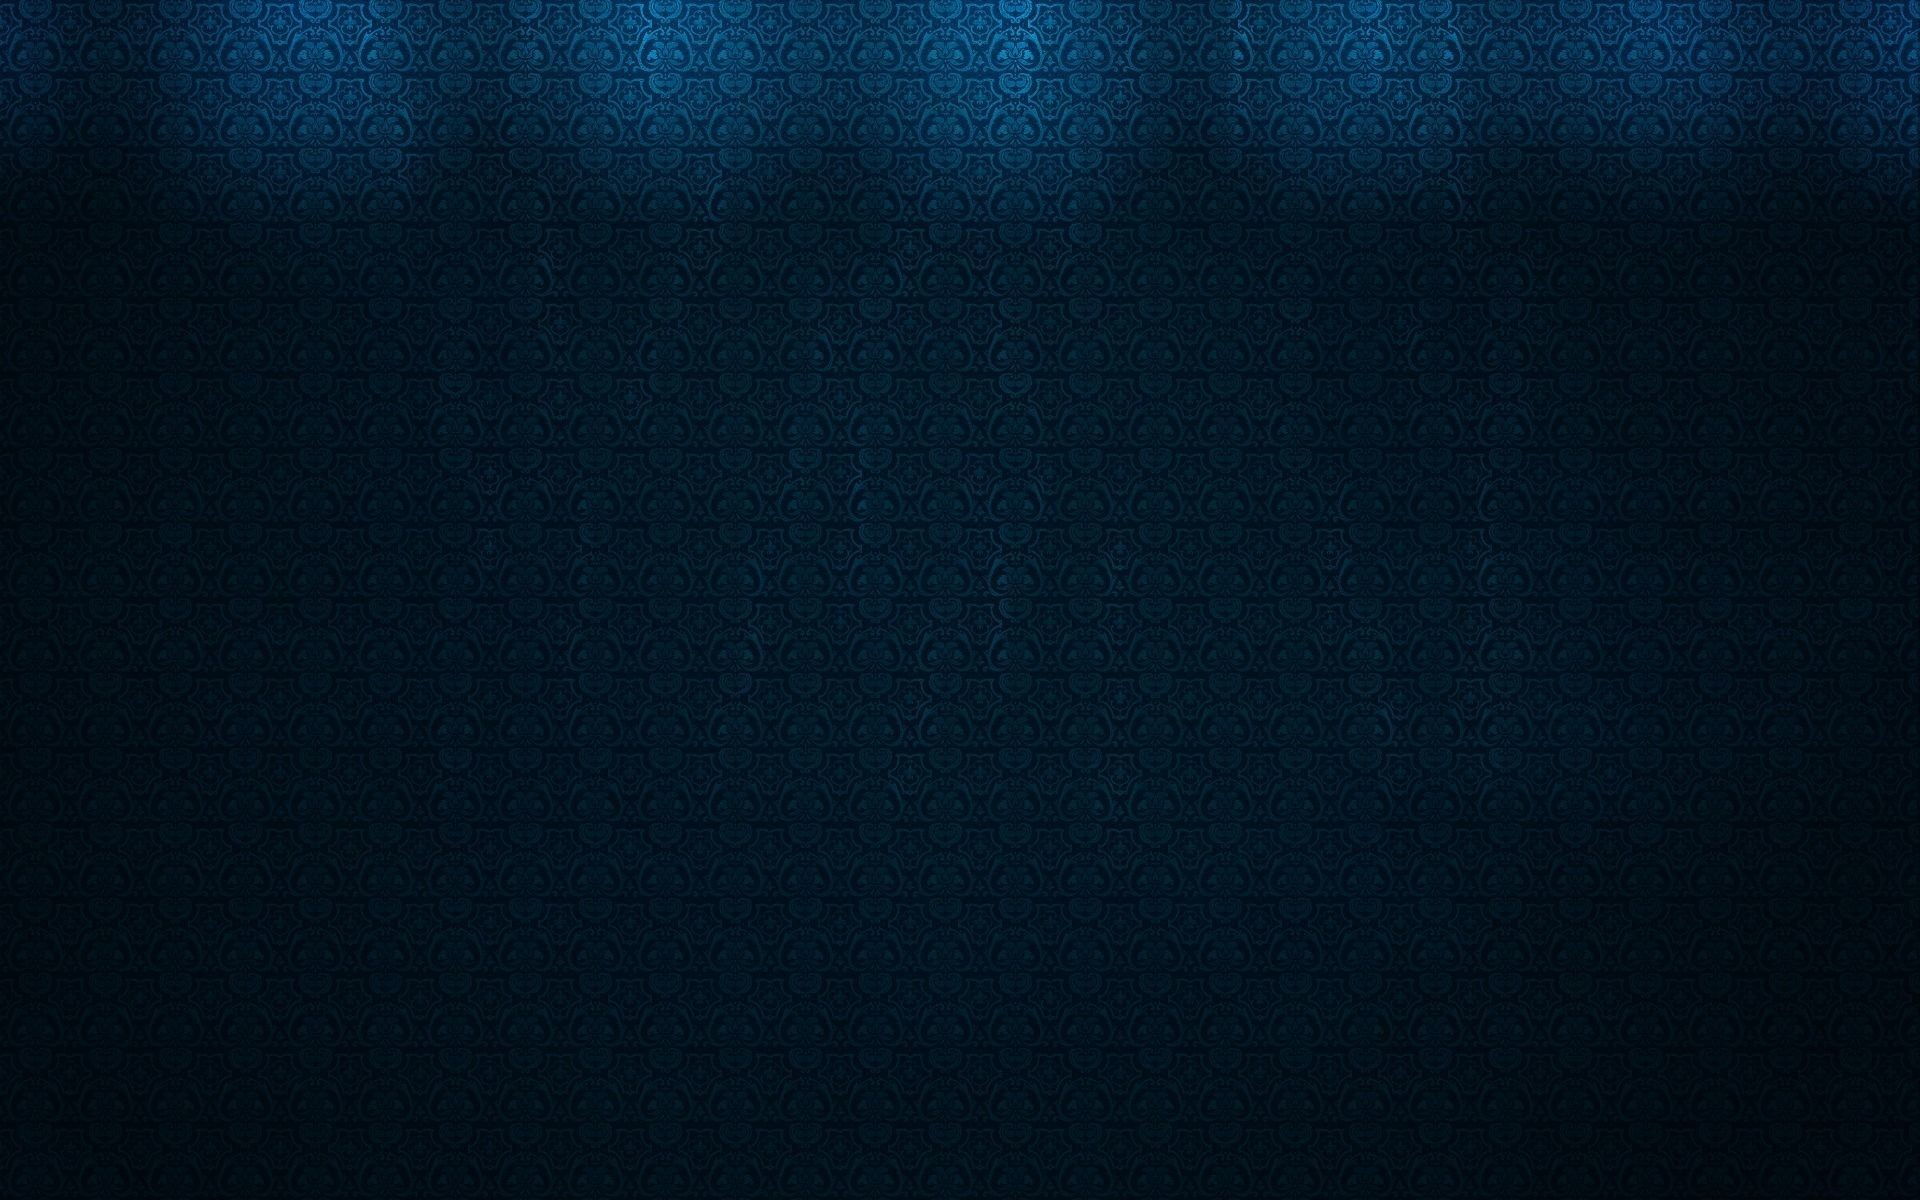 Navy Blue Backgrounds Wallpaper Cave #7642